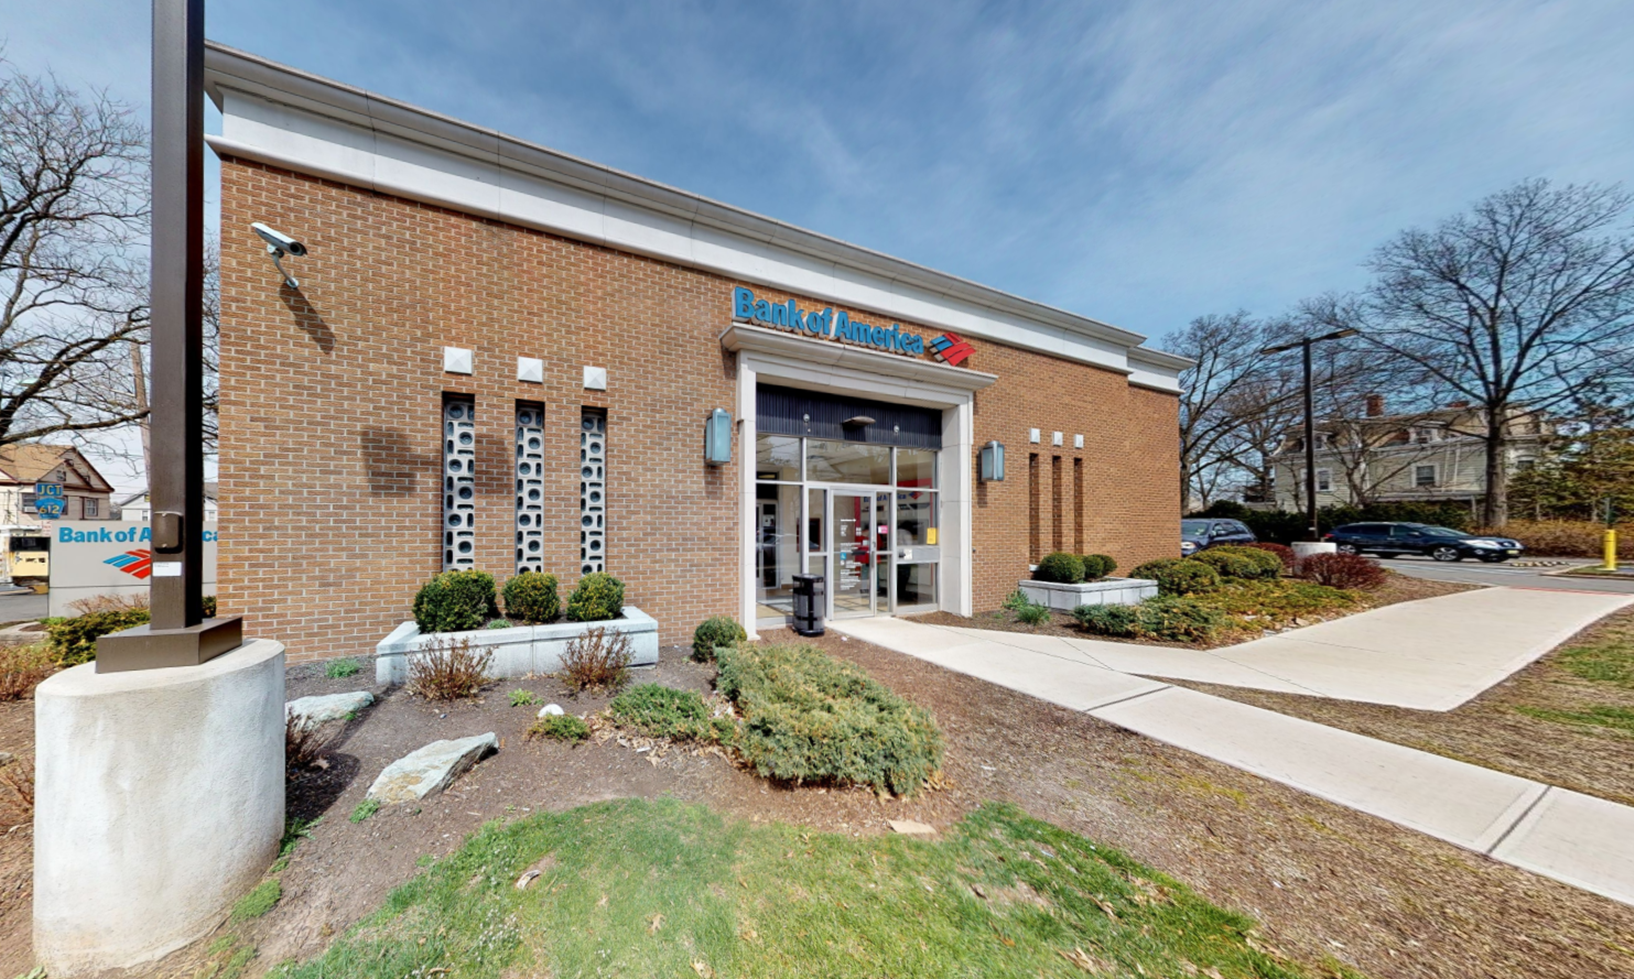 Bank of America financial center with drive-thru ATM | 105 E 4th Ave, Roselle, NJ 07203